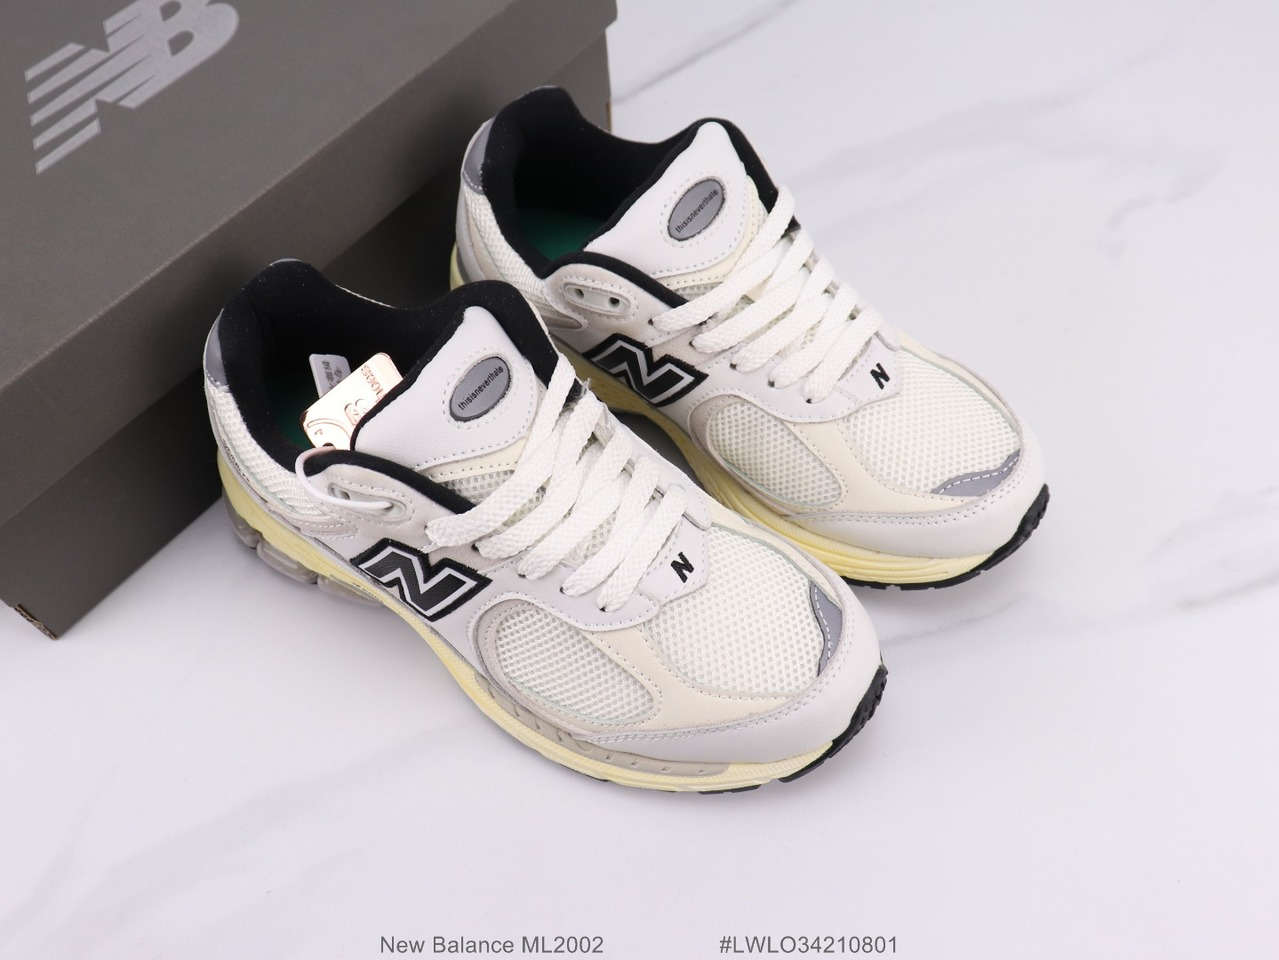 New Balance ML2002 running shoes daddy shoes overall